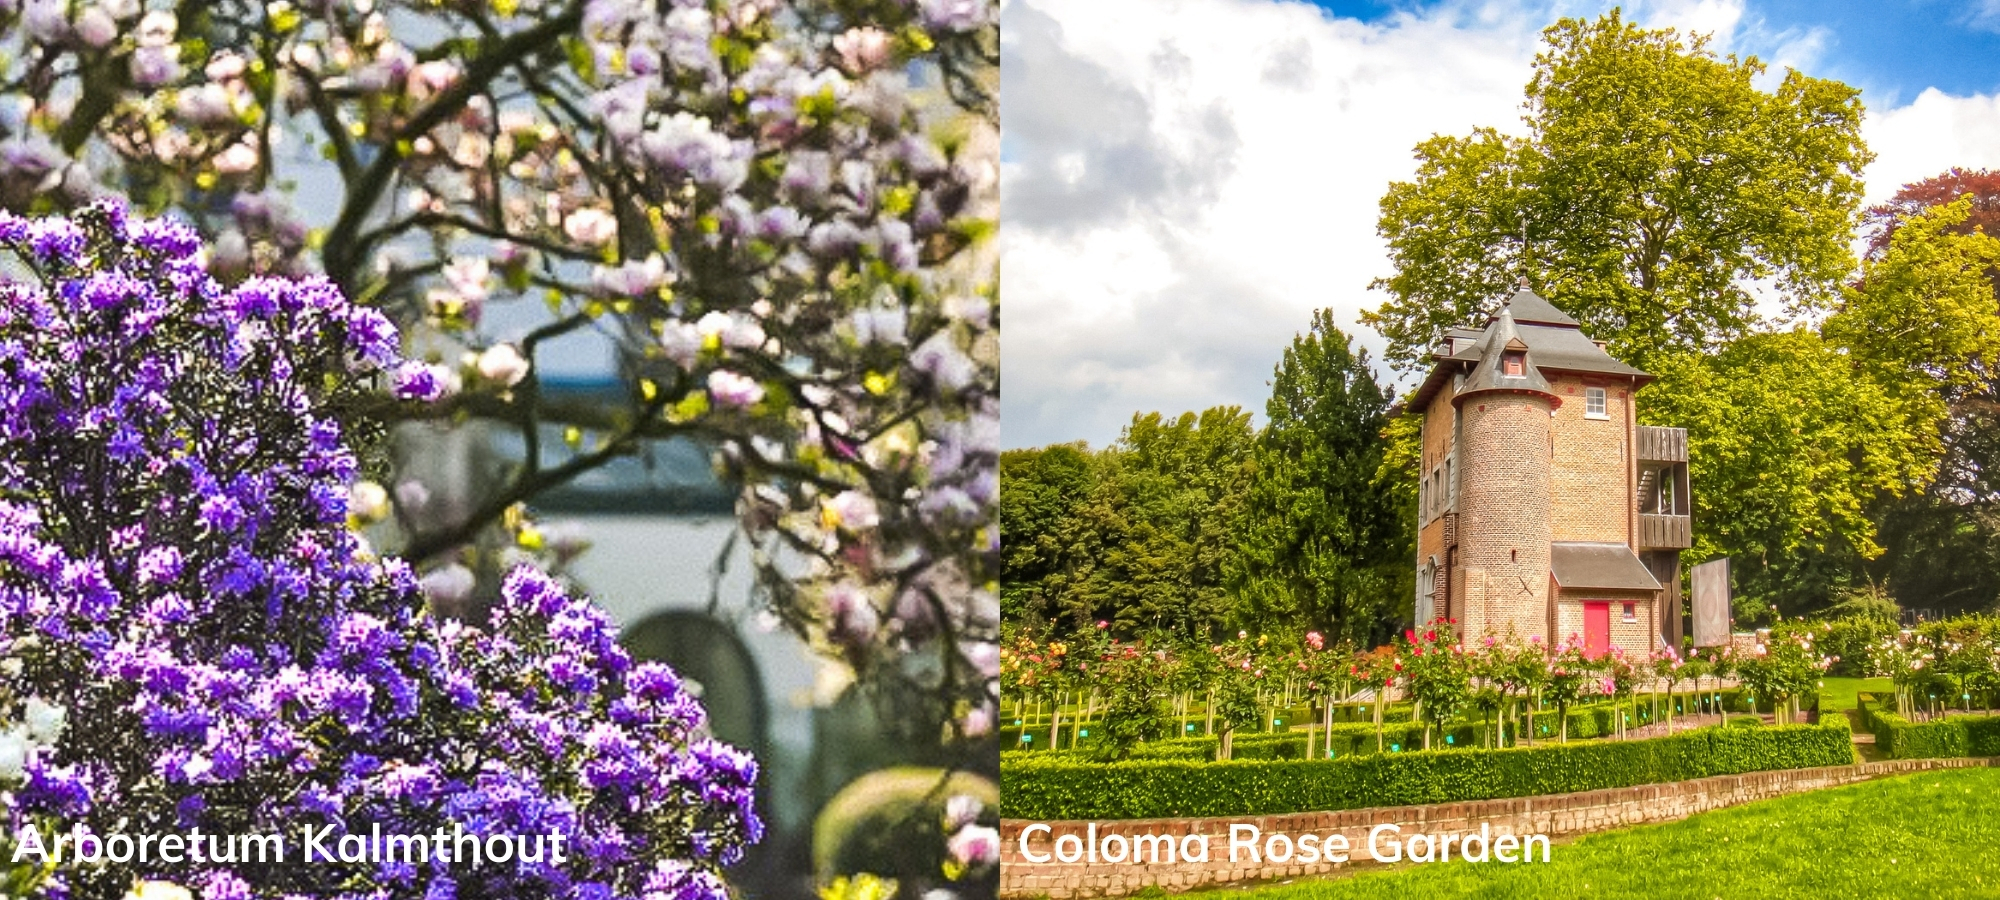 Left: flowers in a nature reserve. Right: rose garden, Brussels